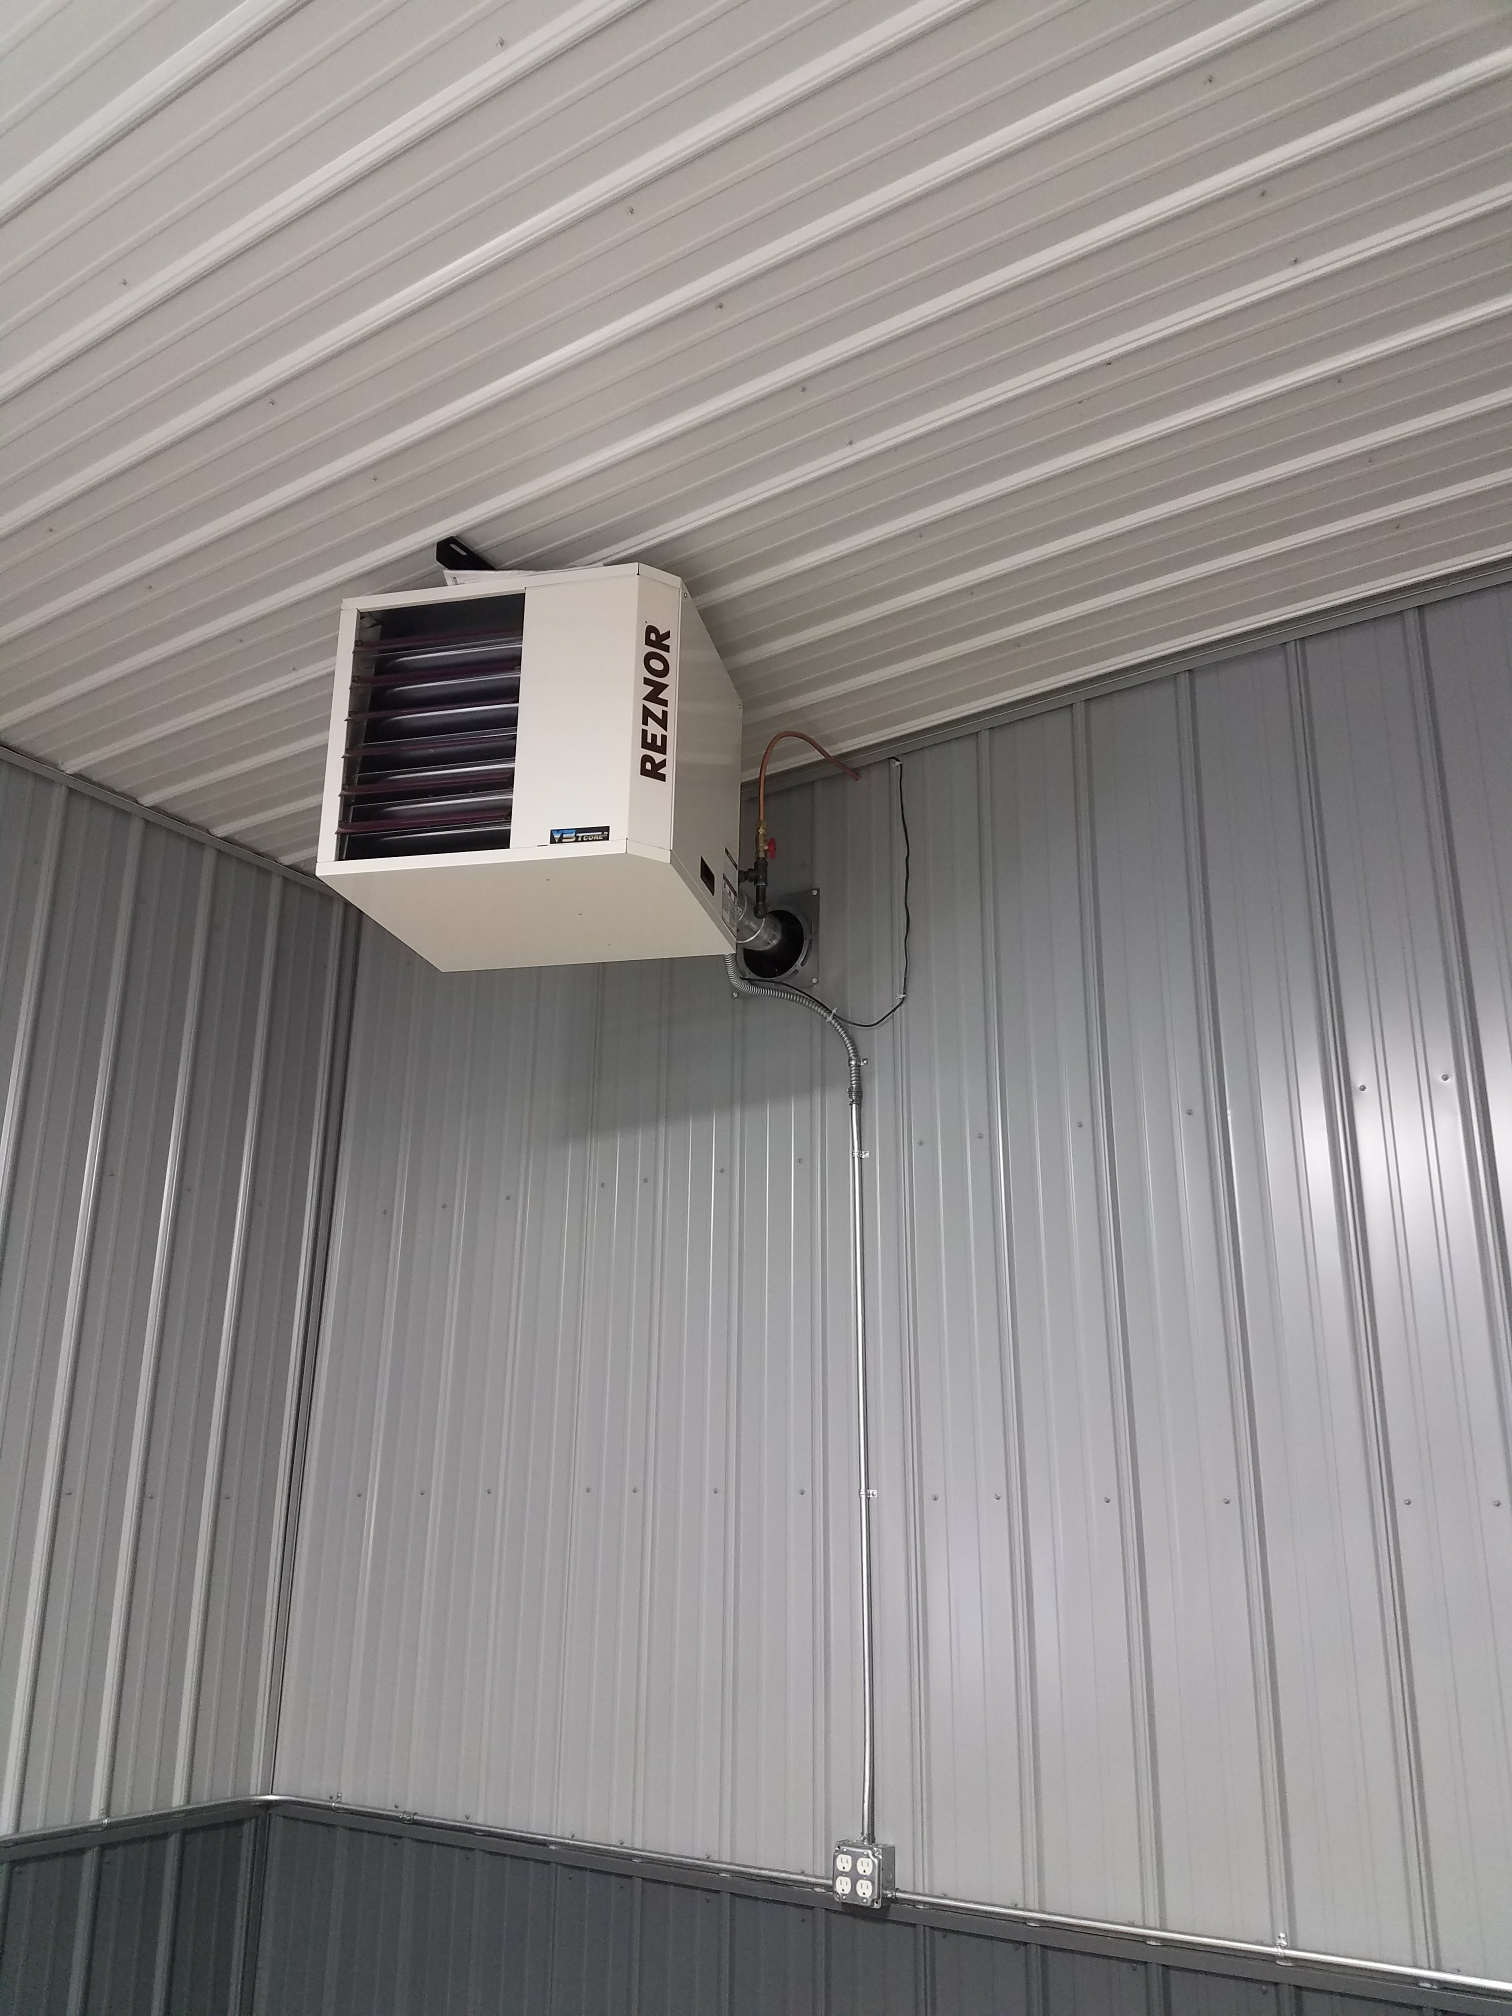 Garage Heater Minnesota Furnace Air Conditioning Repair In Rogers Mn